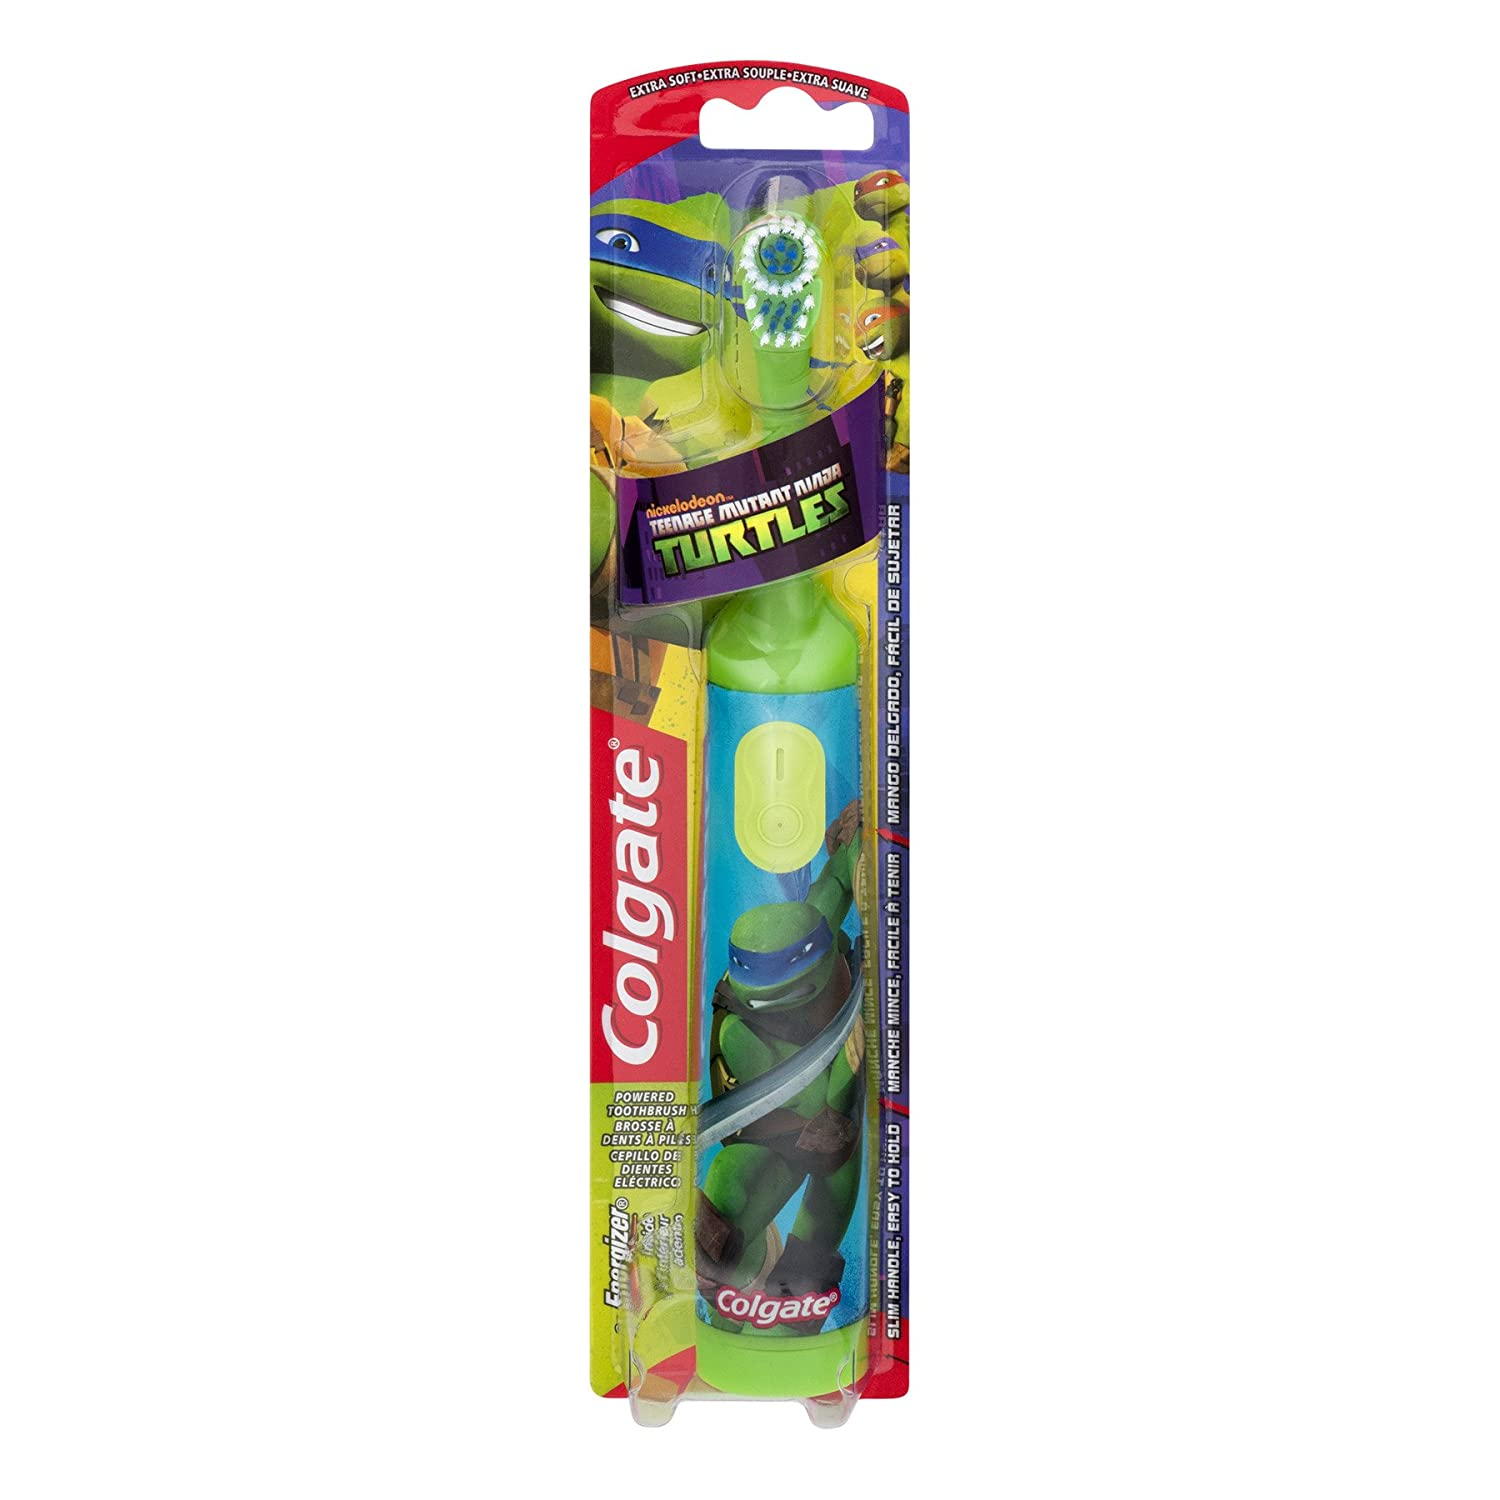 Amazon.com: Colgate Childrens Teenage Mutant Ninja Turtles Powered Toothbrush, Soft, 1 ea (Pack of 2): Beauty